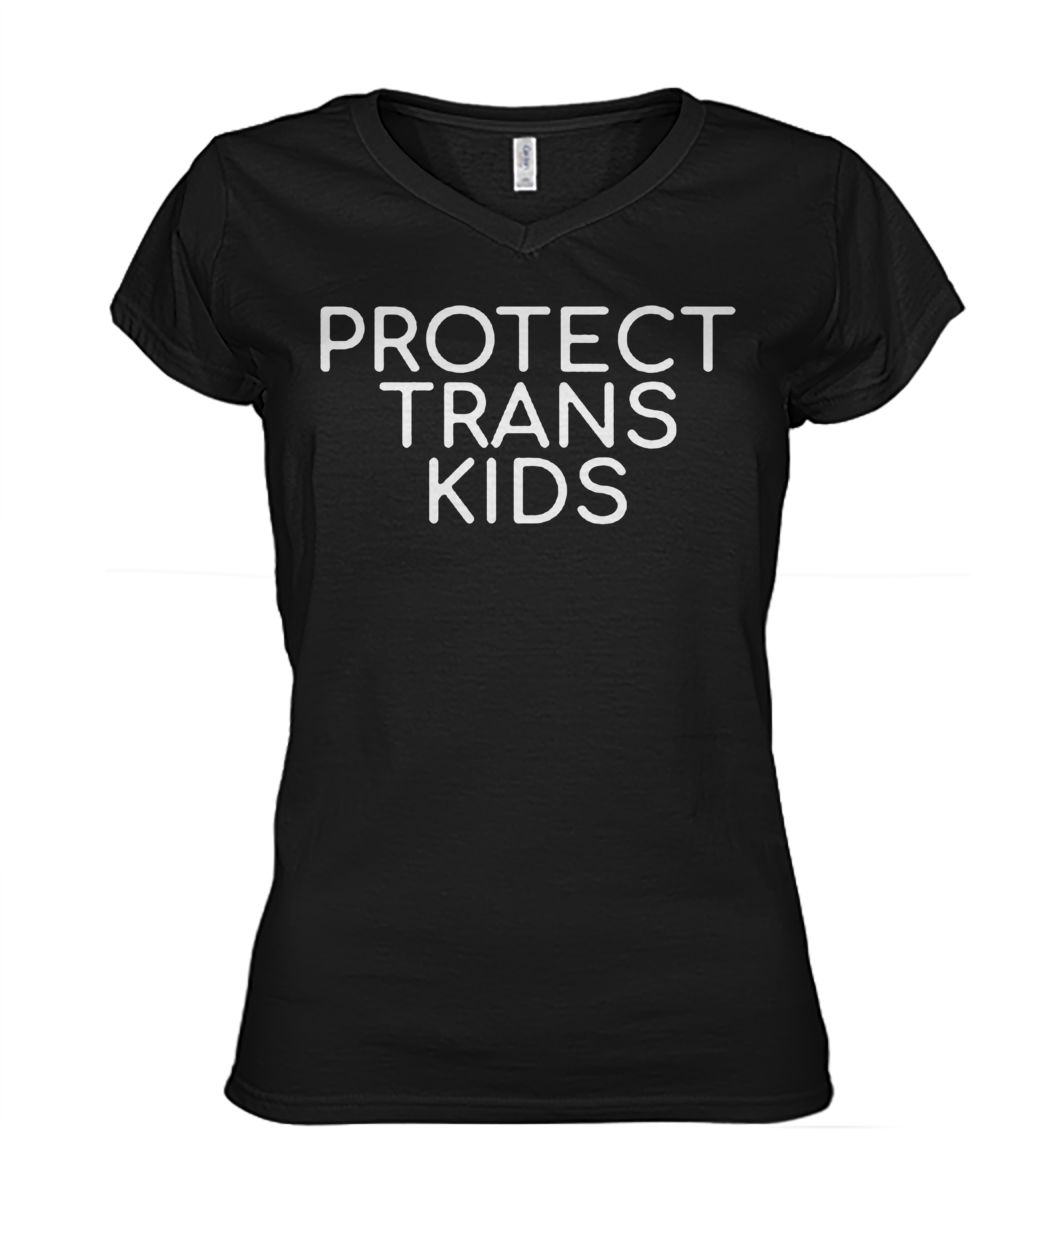 Protect trans kids women's v-neck